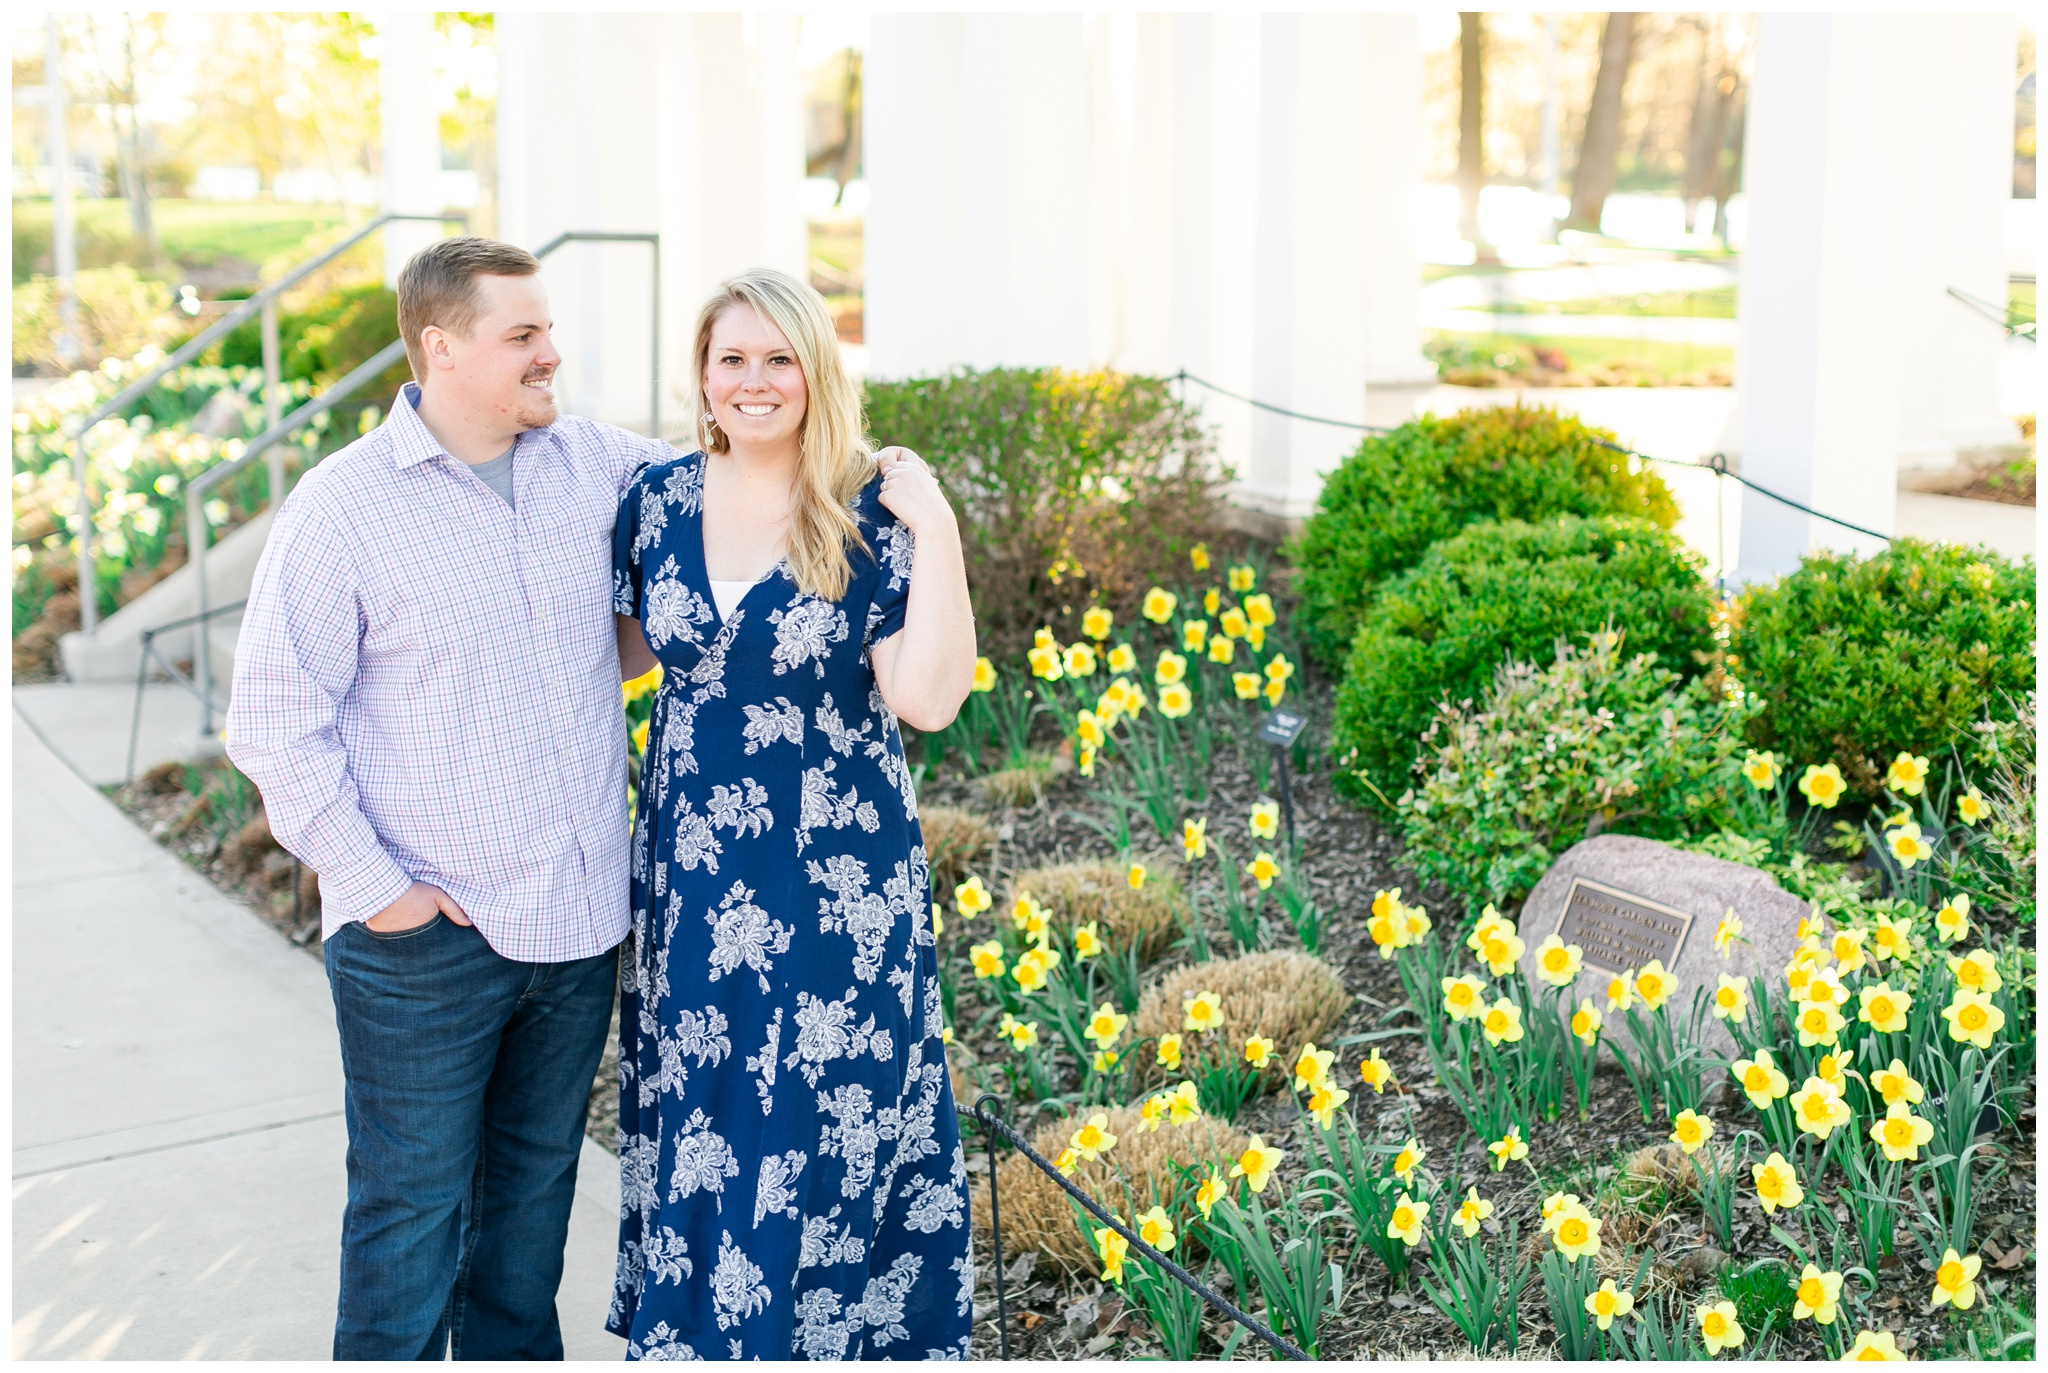 nicholas_conservatory_engagement_session_rockford_illinois_caynay_photo_2979.jpg